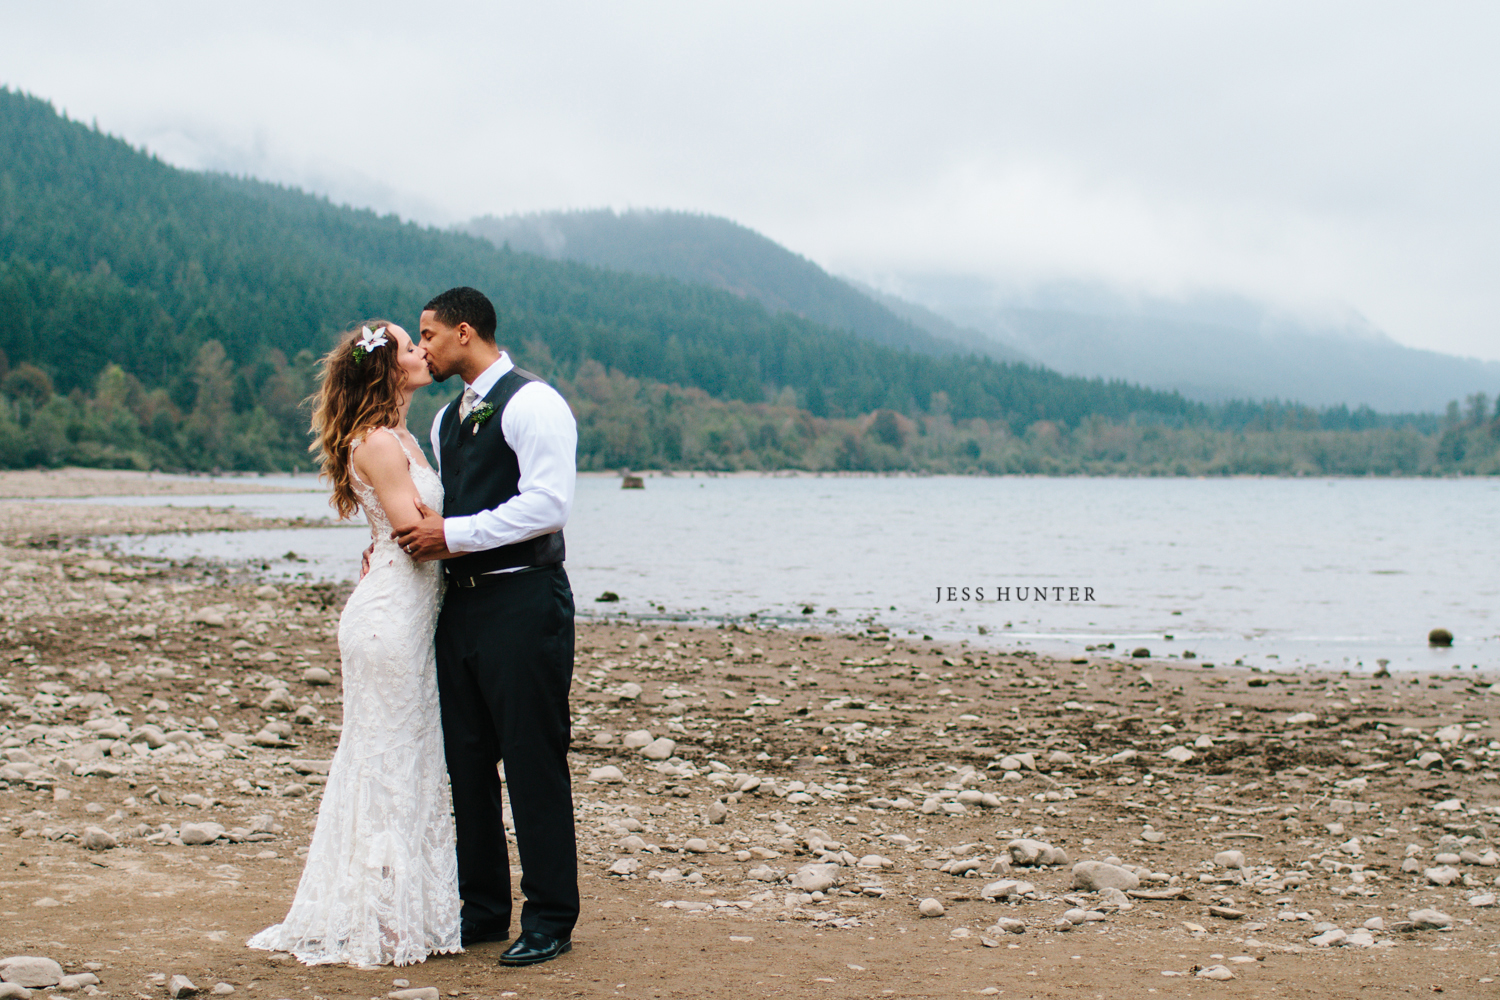 Jess Hunter, Jessica Hunter, Jessica Lynn Hunter, Jess Hunter Photography, mountain wedding photographer, seattle wedding photographer, washington state, pacific northwest, North Bend WA, Rattlesnake Lake, lake wedding, nature inspired wedding, woodsy wedding